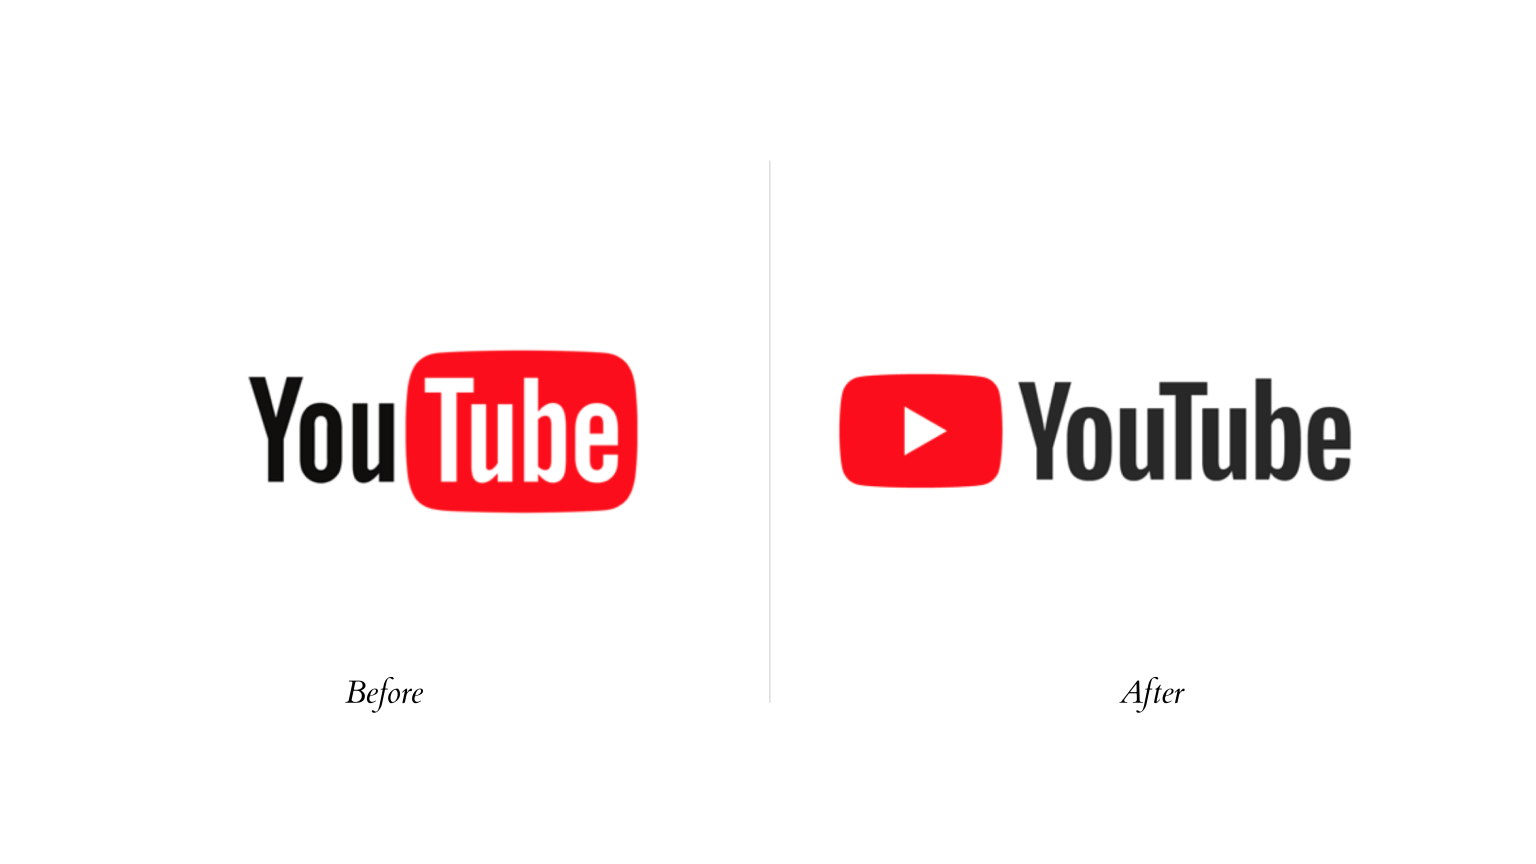 YouTube Rebrand